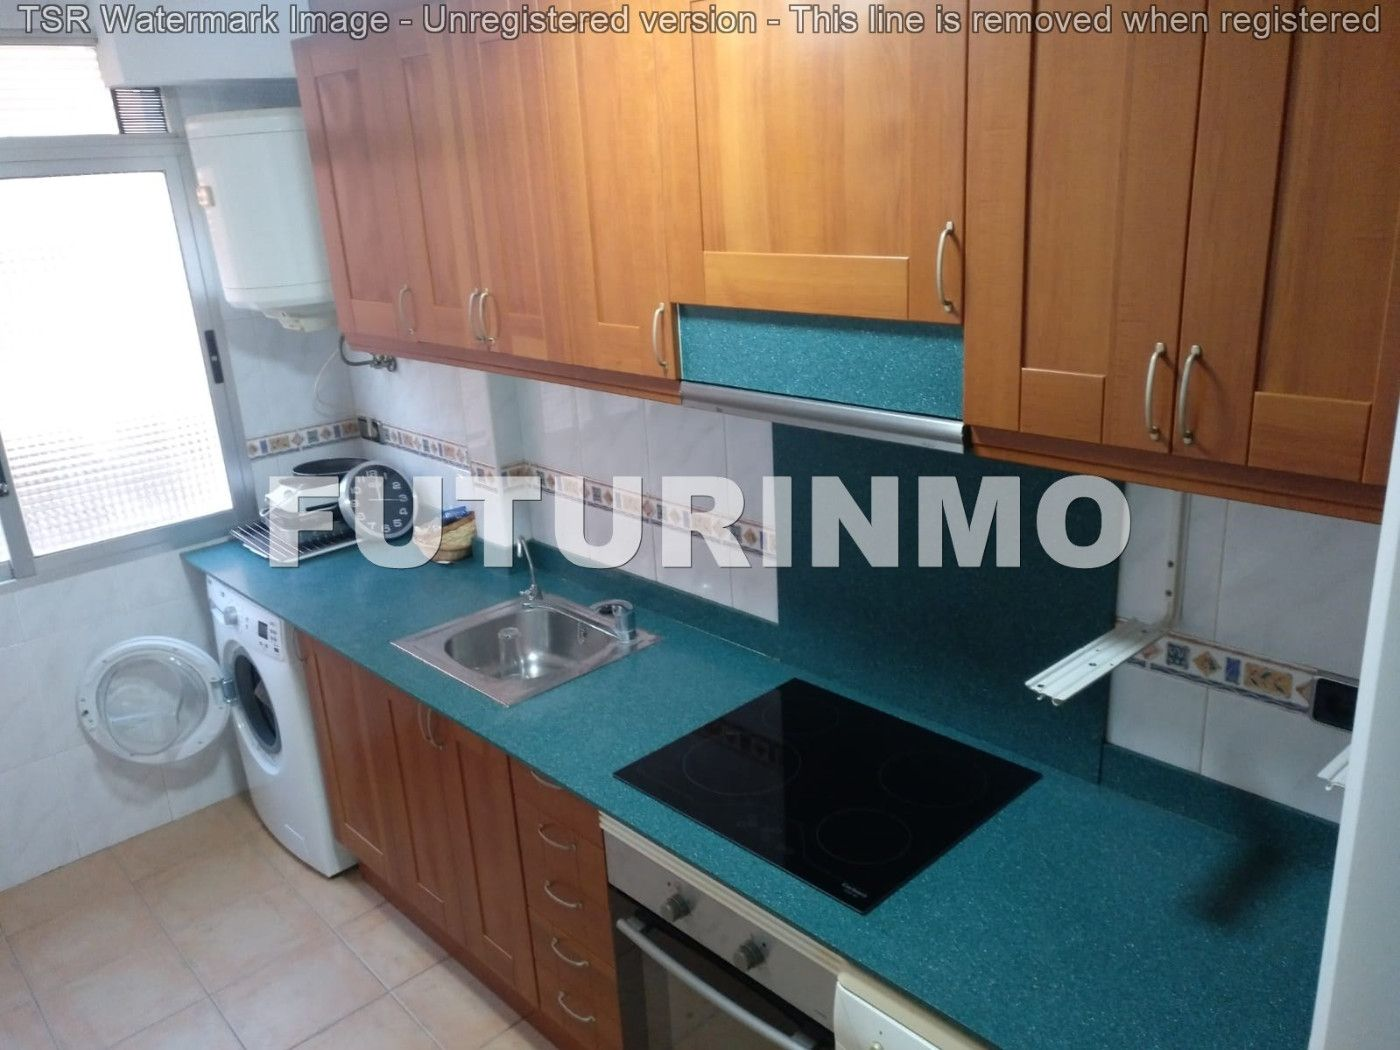 Location Appartement à Albal. Piso en albal amueblado